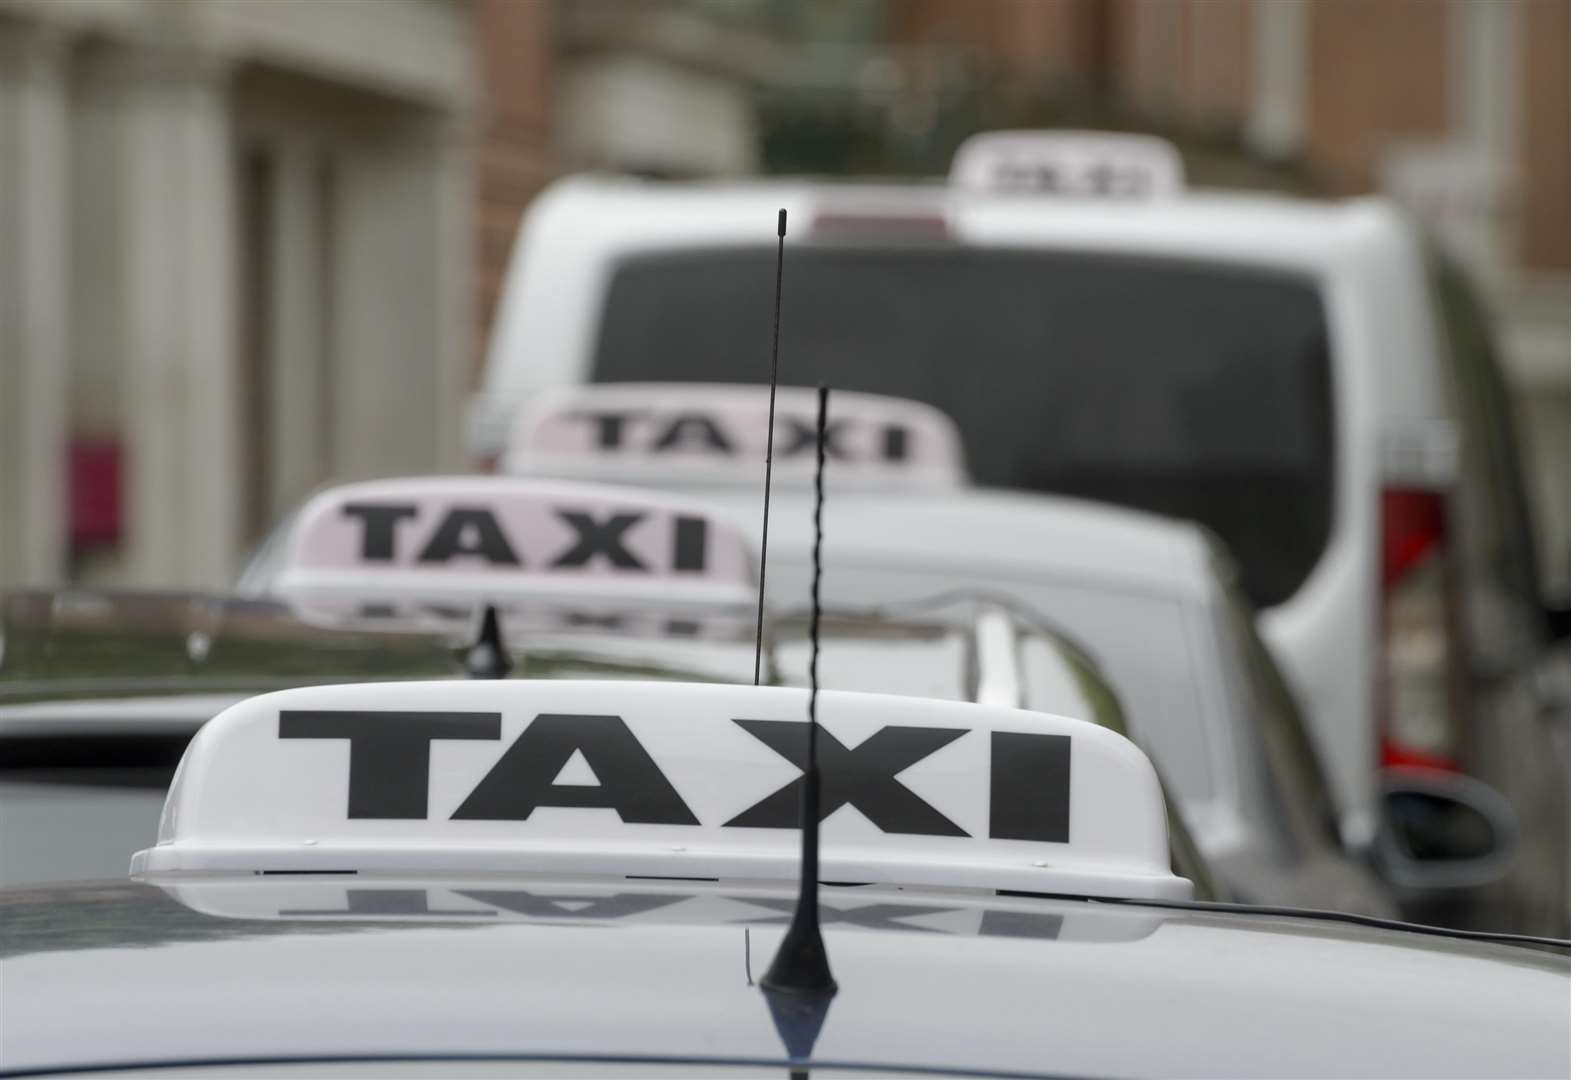 Cambridge taxi driver is banned from the trade